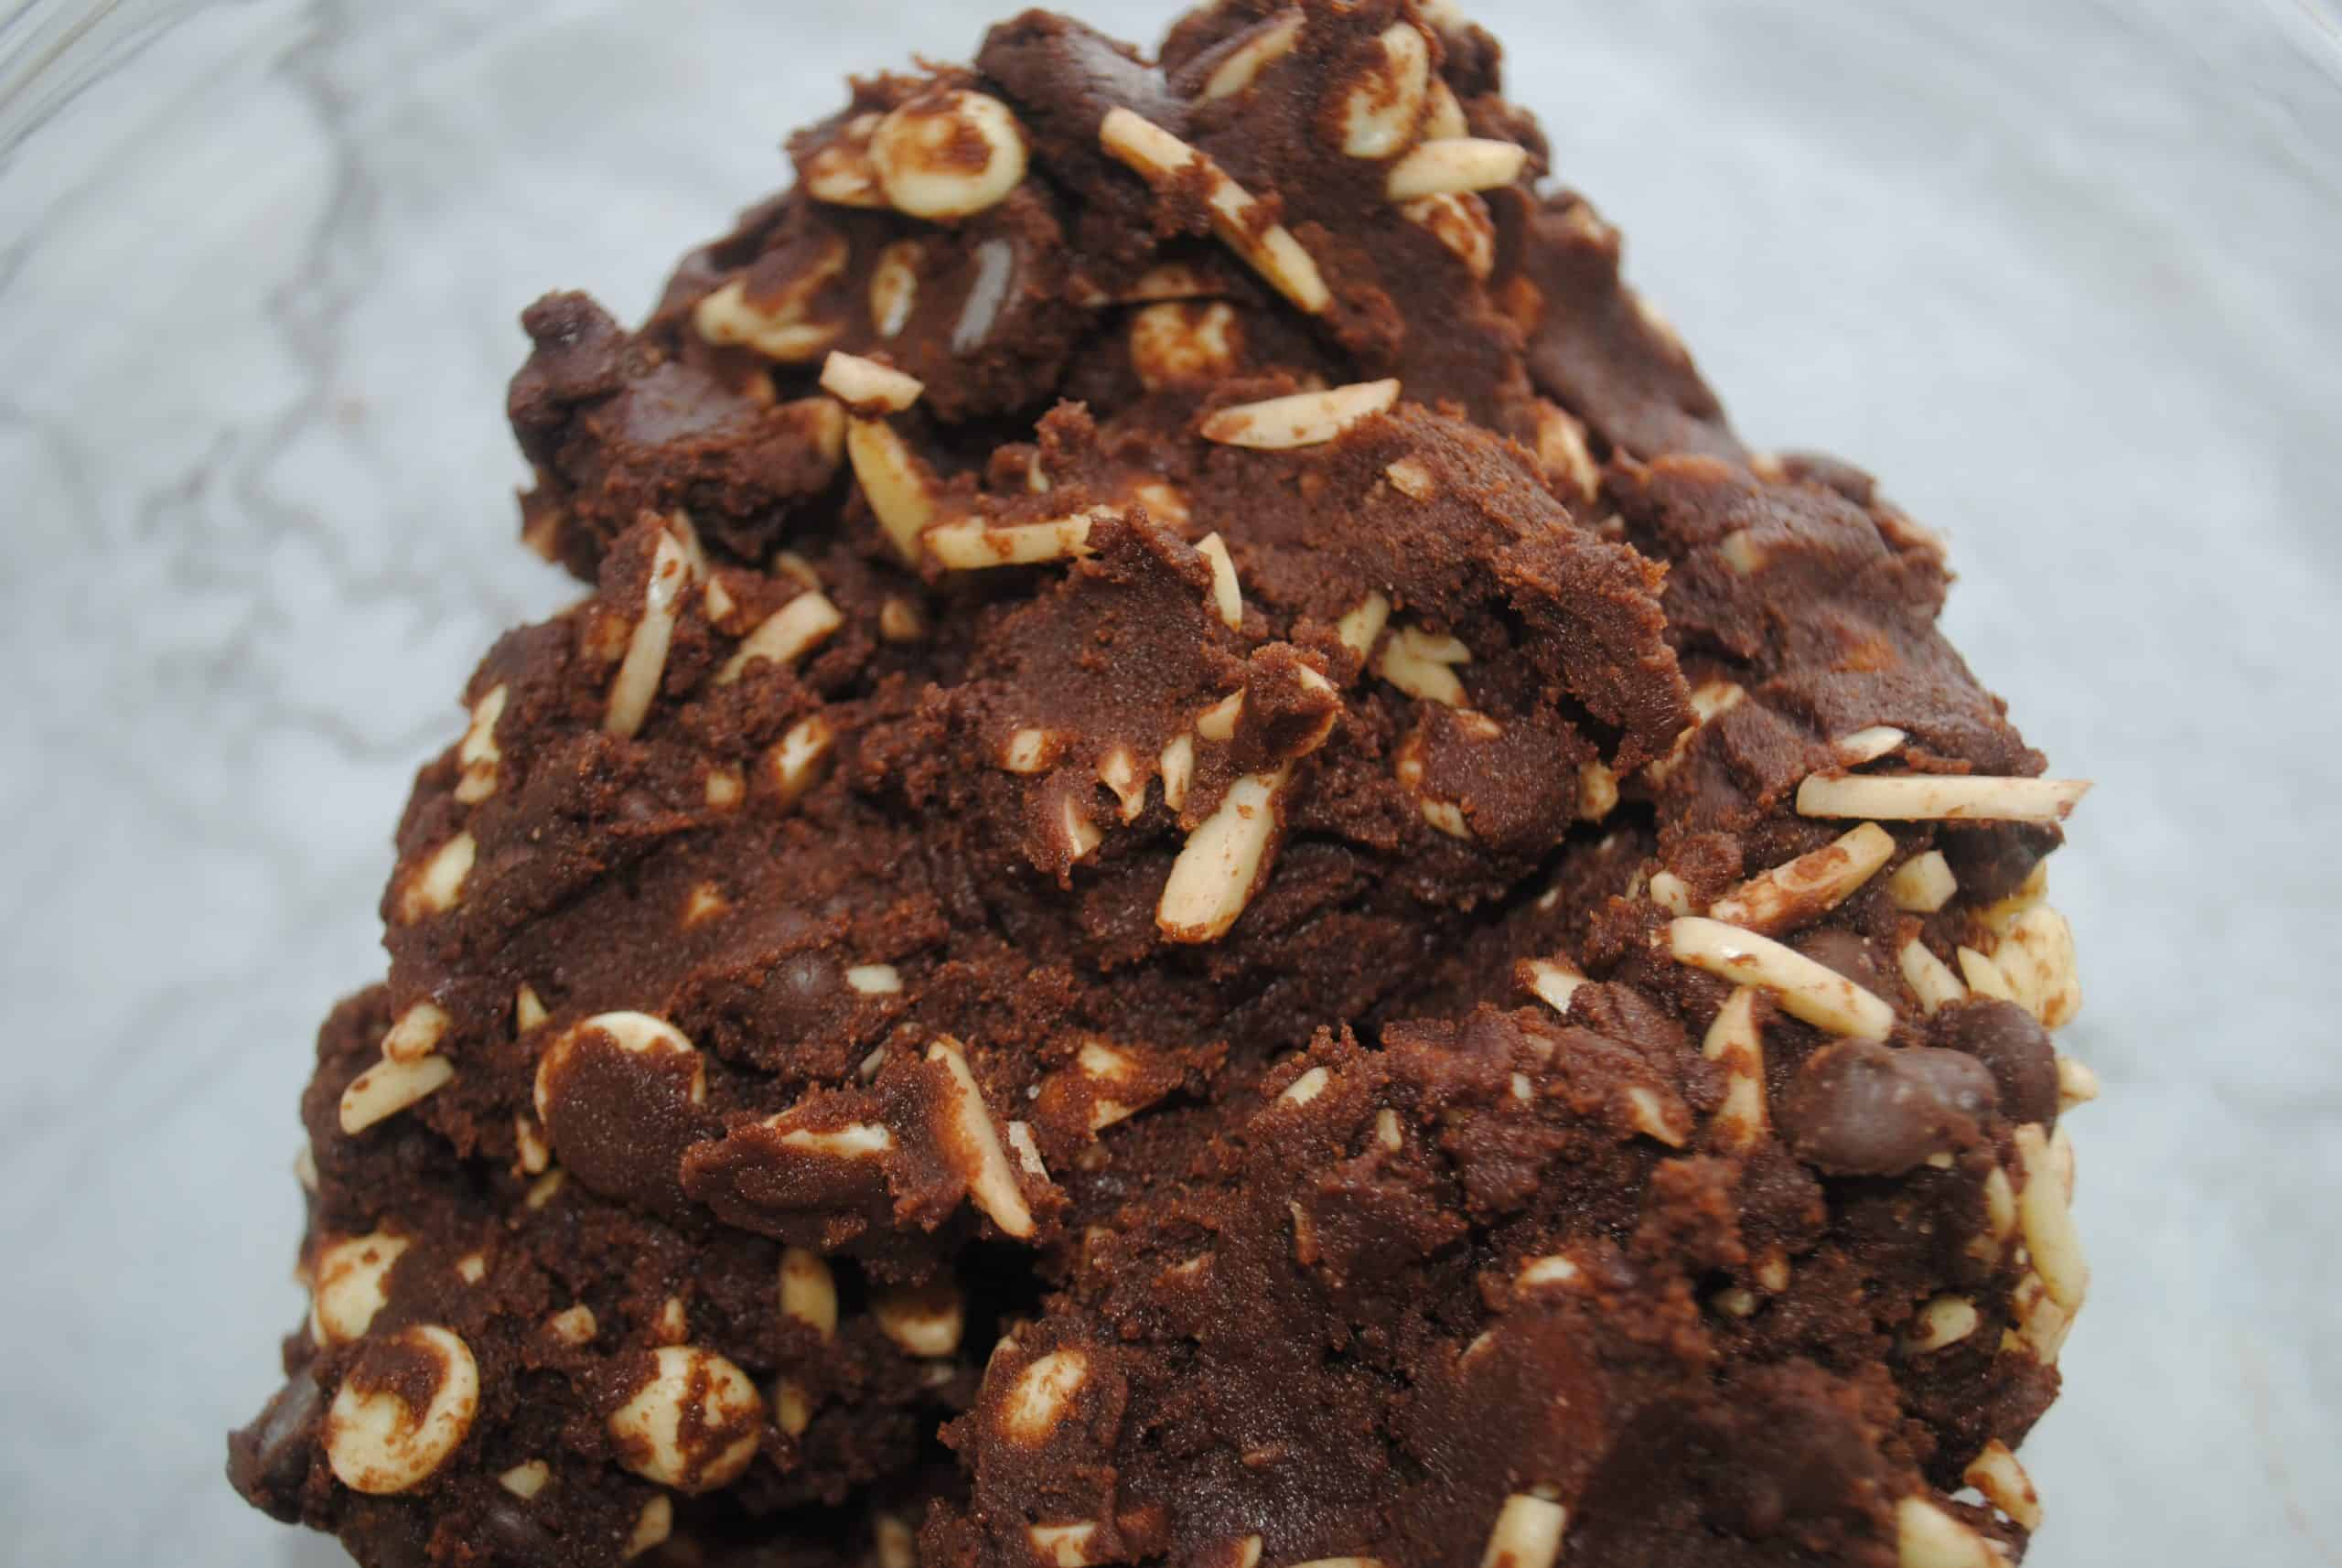 double chocolate almond cookies mixture with chocolate and almonds added ready to scoop